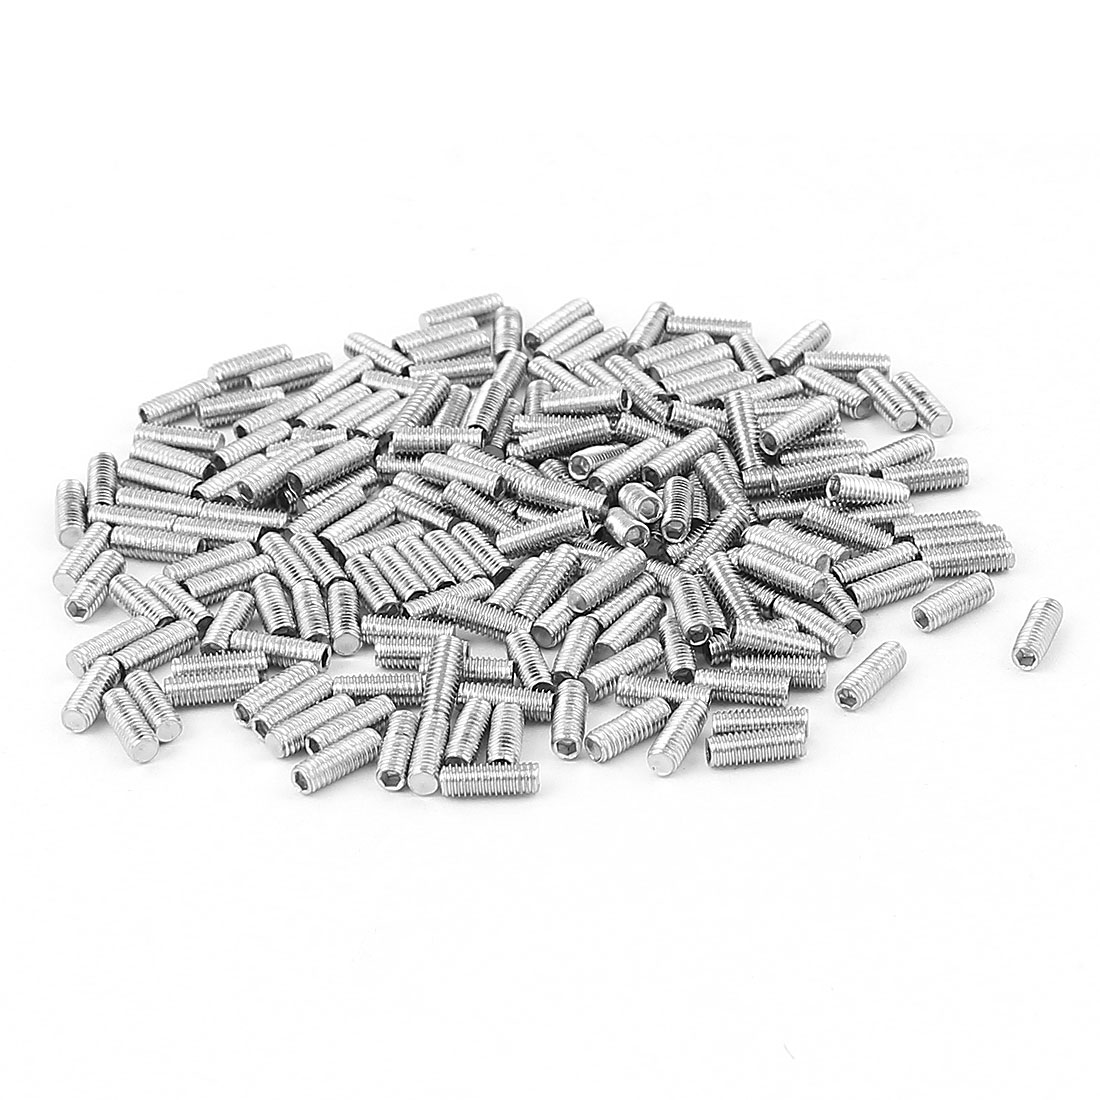 200pcs 304 Stainless Steel M3 Thread Flat Hex Socket Grub Screws